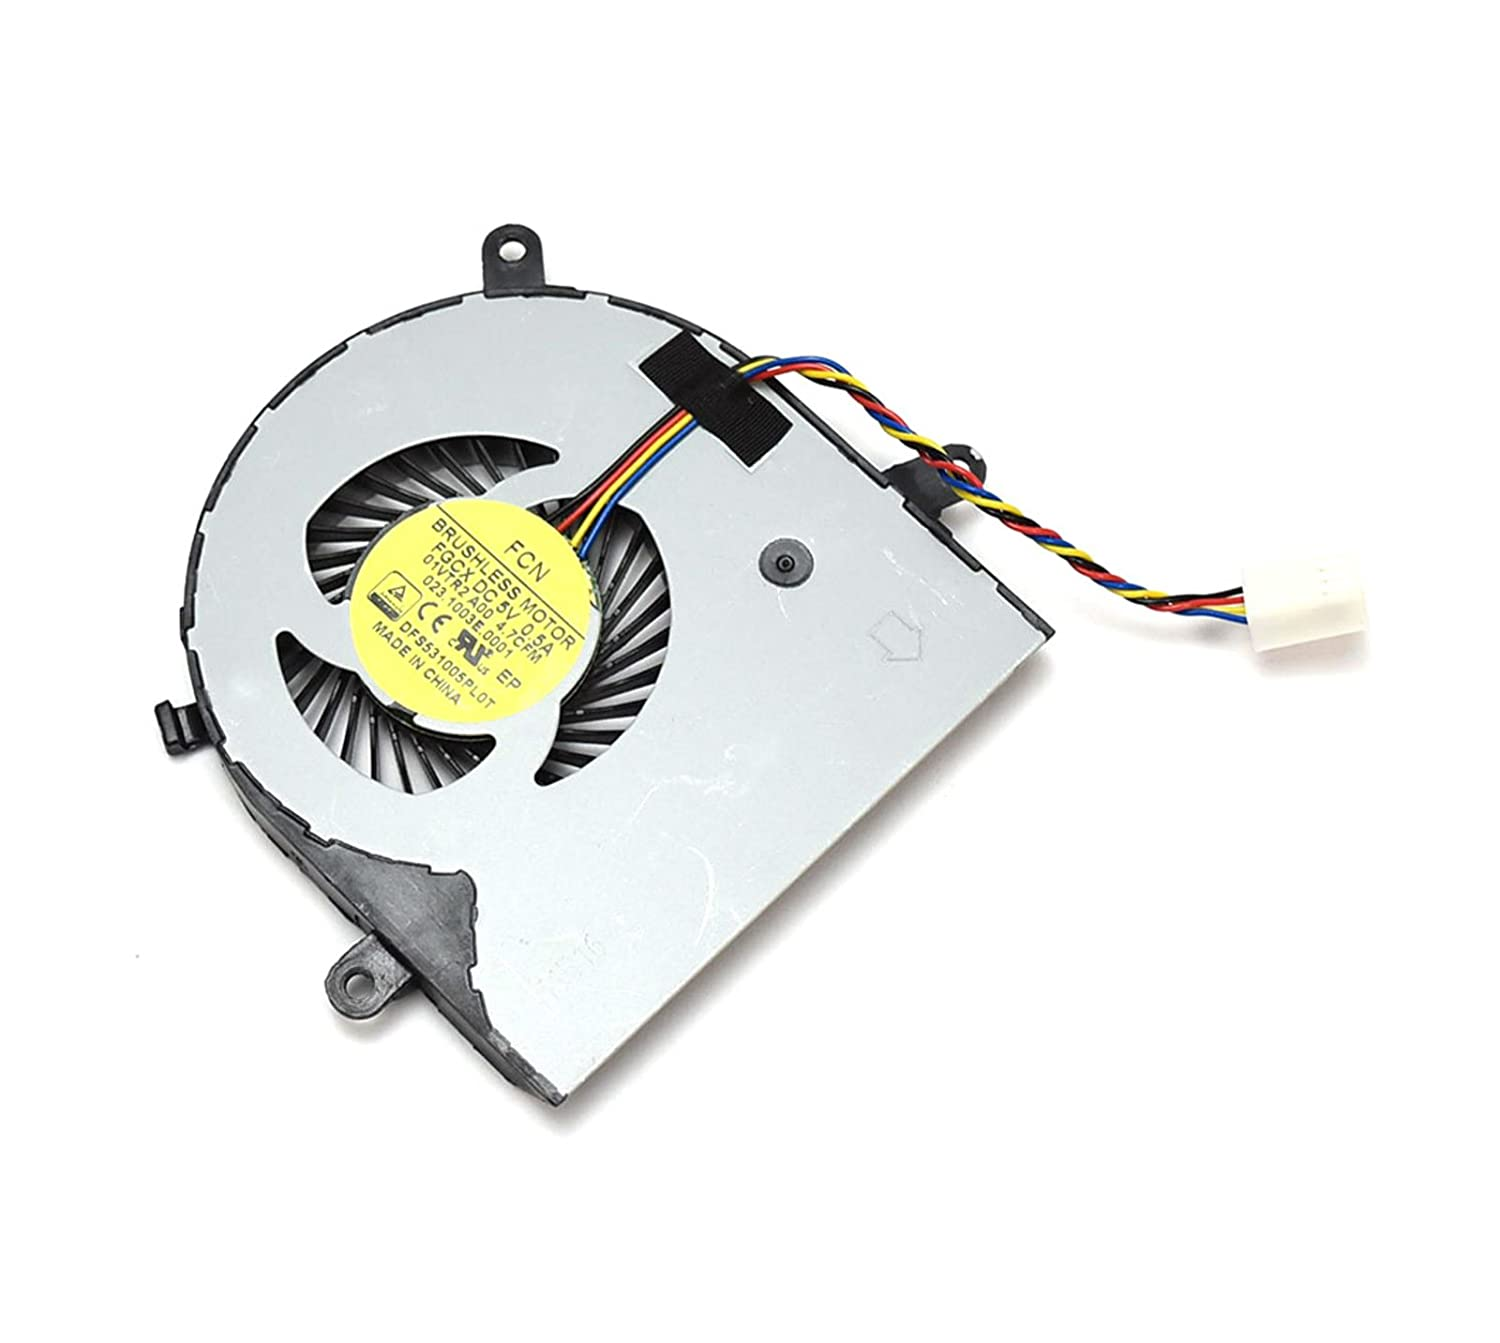 FOR DELL 1VTR2 Dell Inspiron 24 3455 3459 All-In-One CPU Cooling Fan 4-Pin Cable AIO